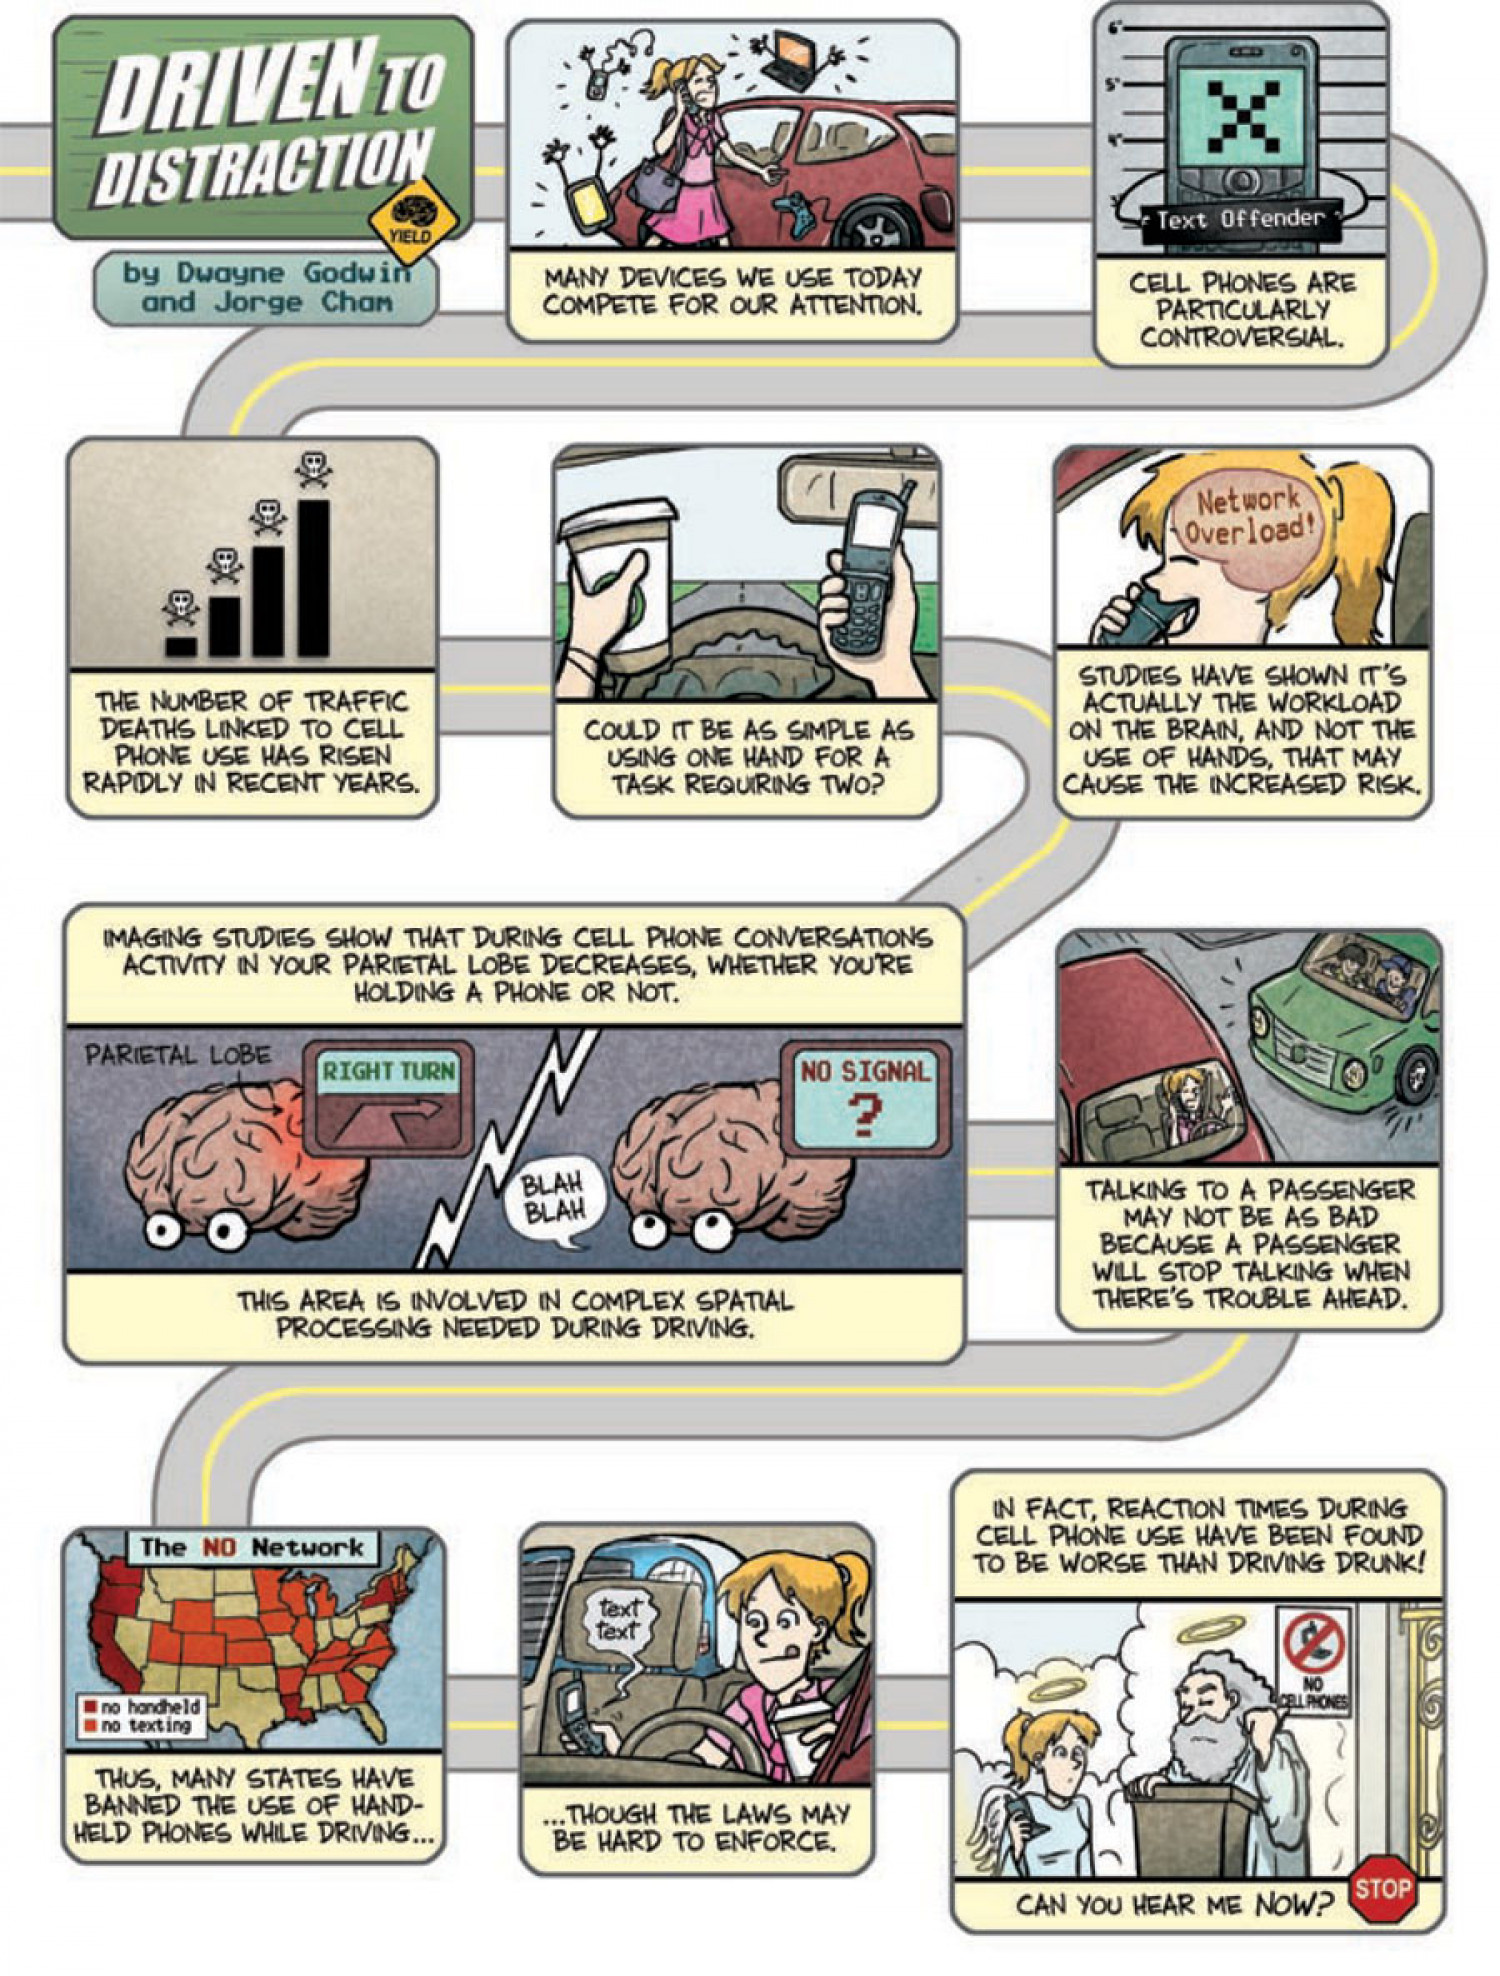 Is it safe to drive while on your hands-free phone? Infographic